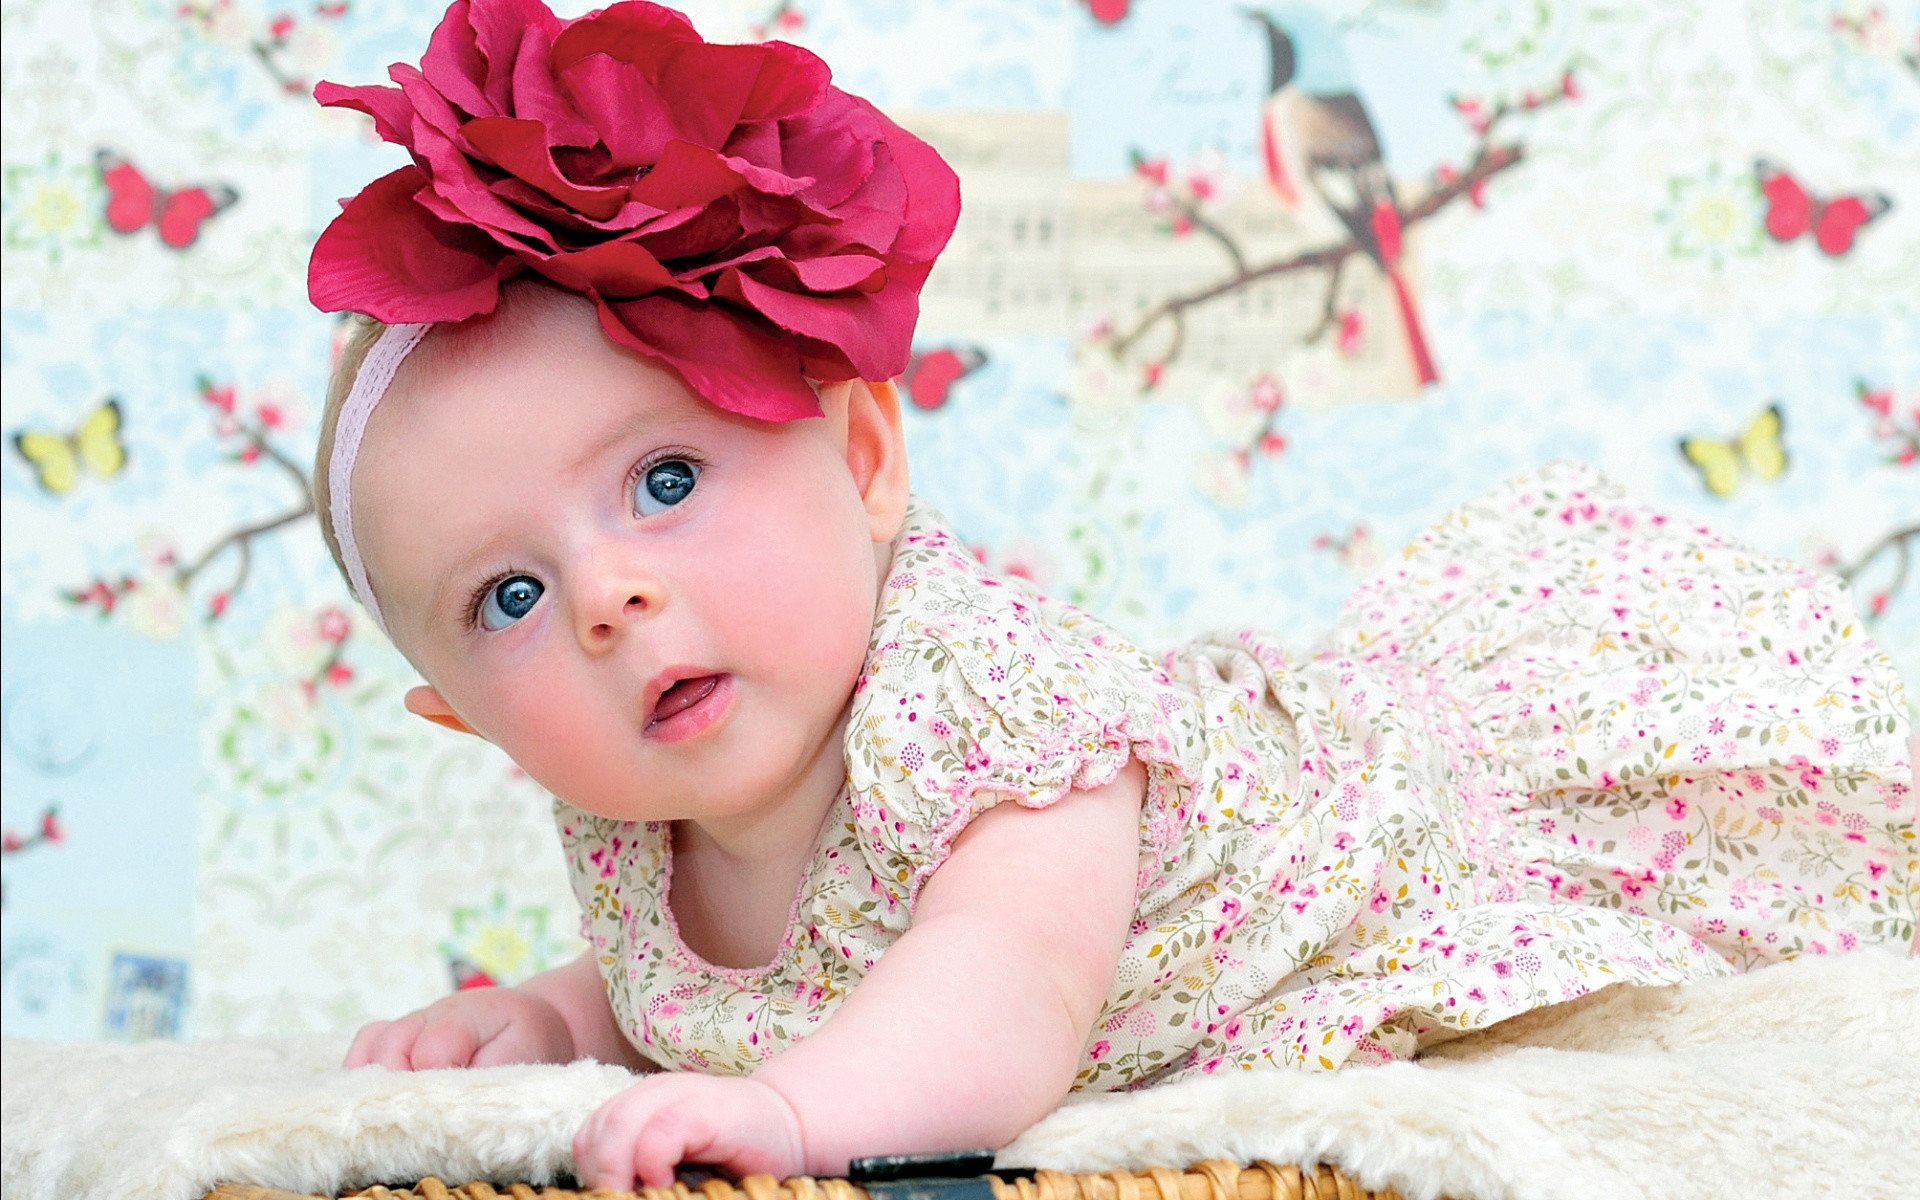 1920x1200 Cute Baby Girl Wallpaper Cool Pictures 6om8053a Yoanu